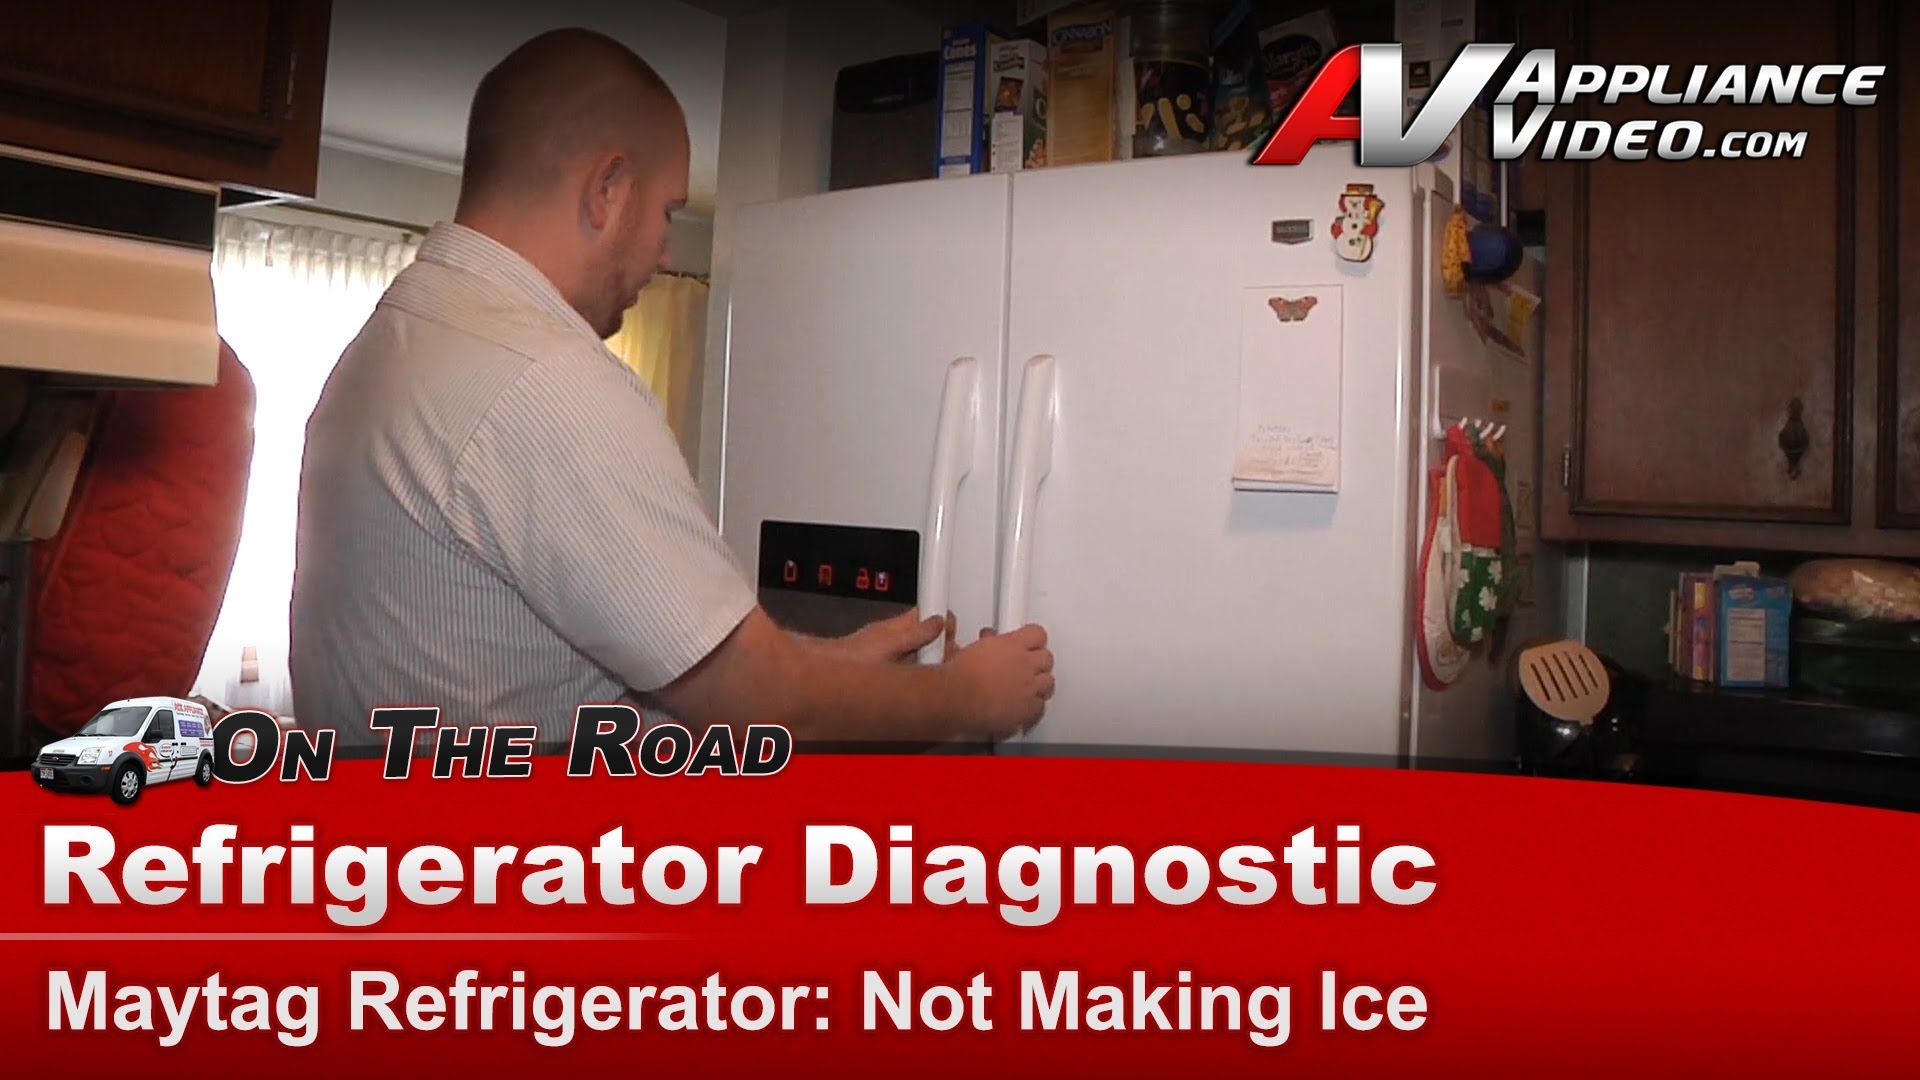 Fix Your Own Maytag French Door Refrigerator That Has These